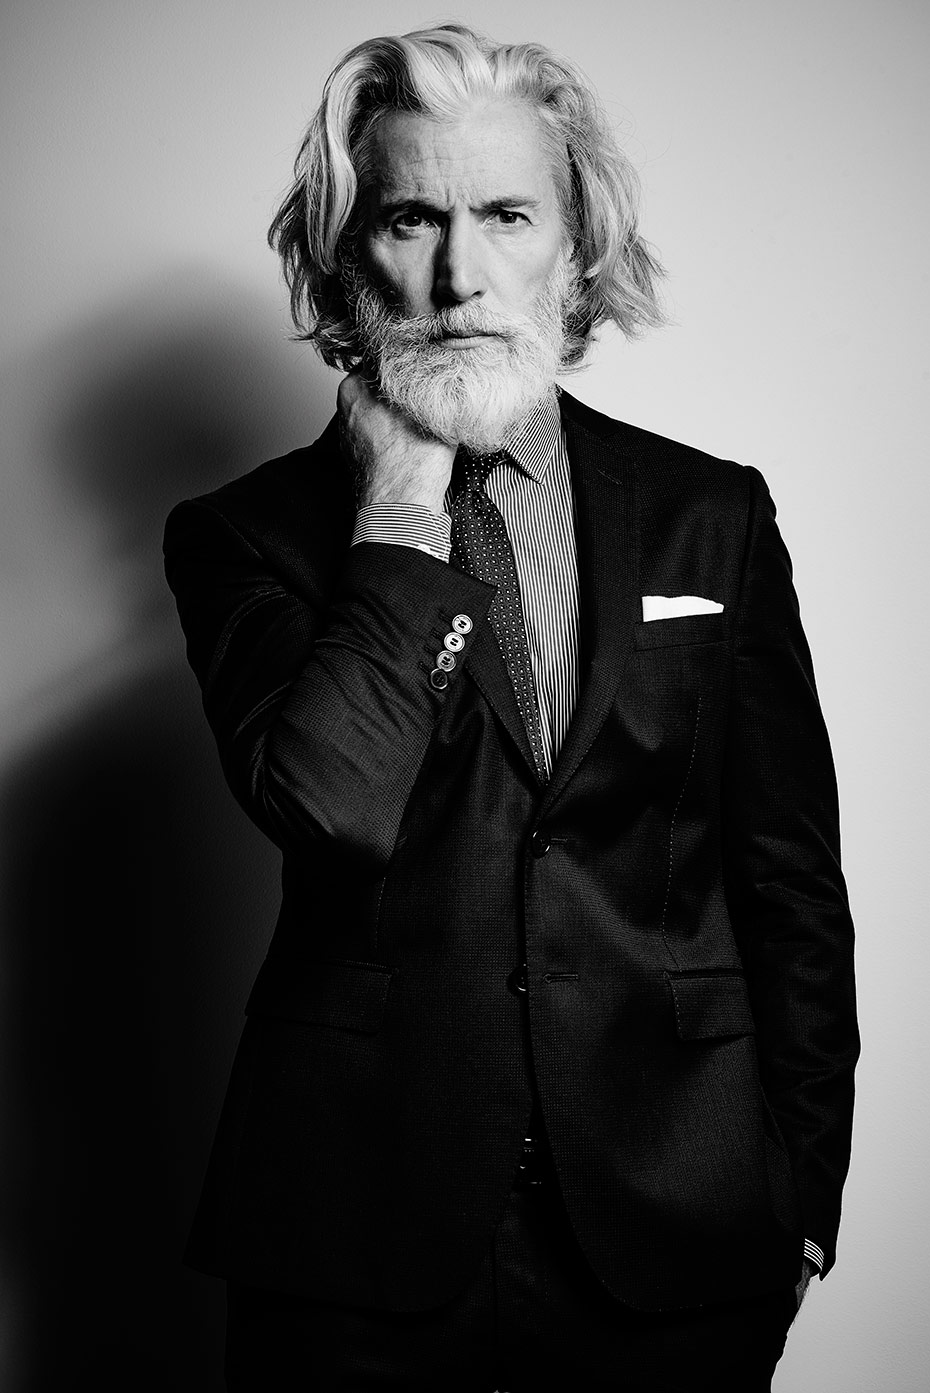 Aiden Shaw - When your life is a Shaw - by Enrico Labriola